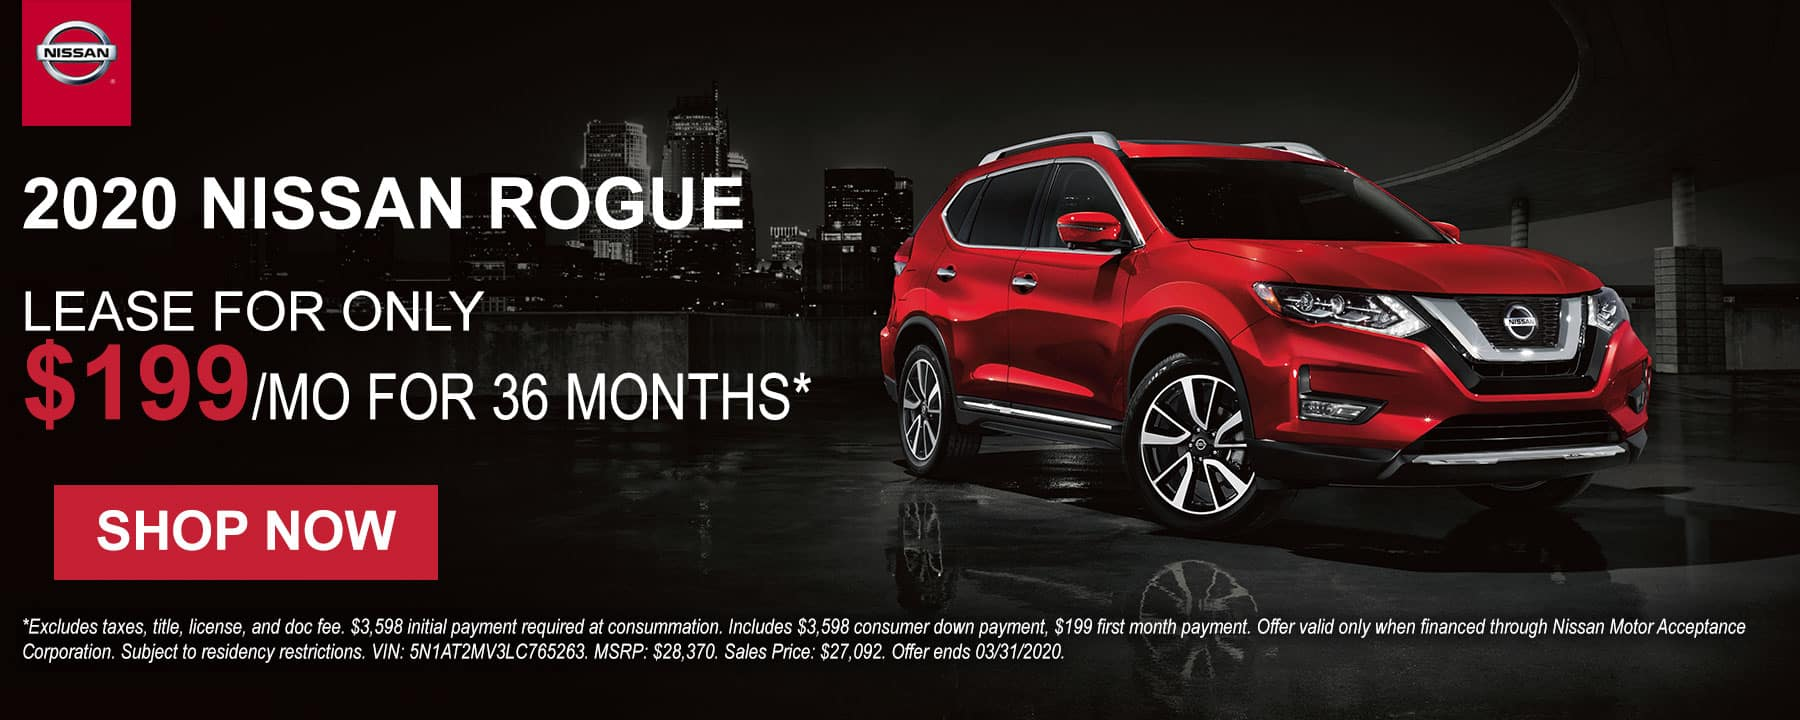 Lease a 2020 Nissan Rogue for only $199